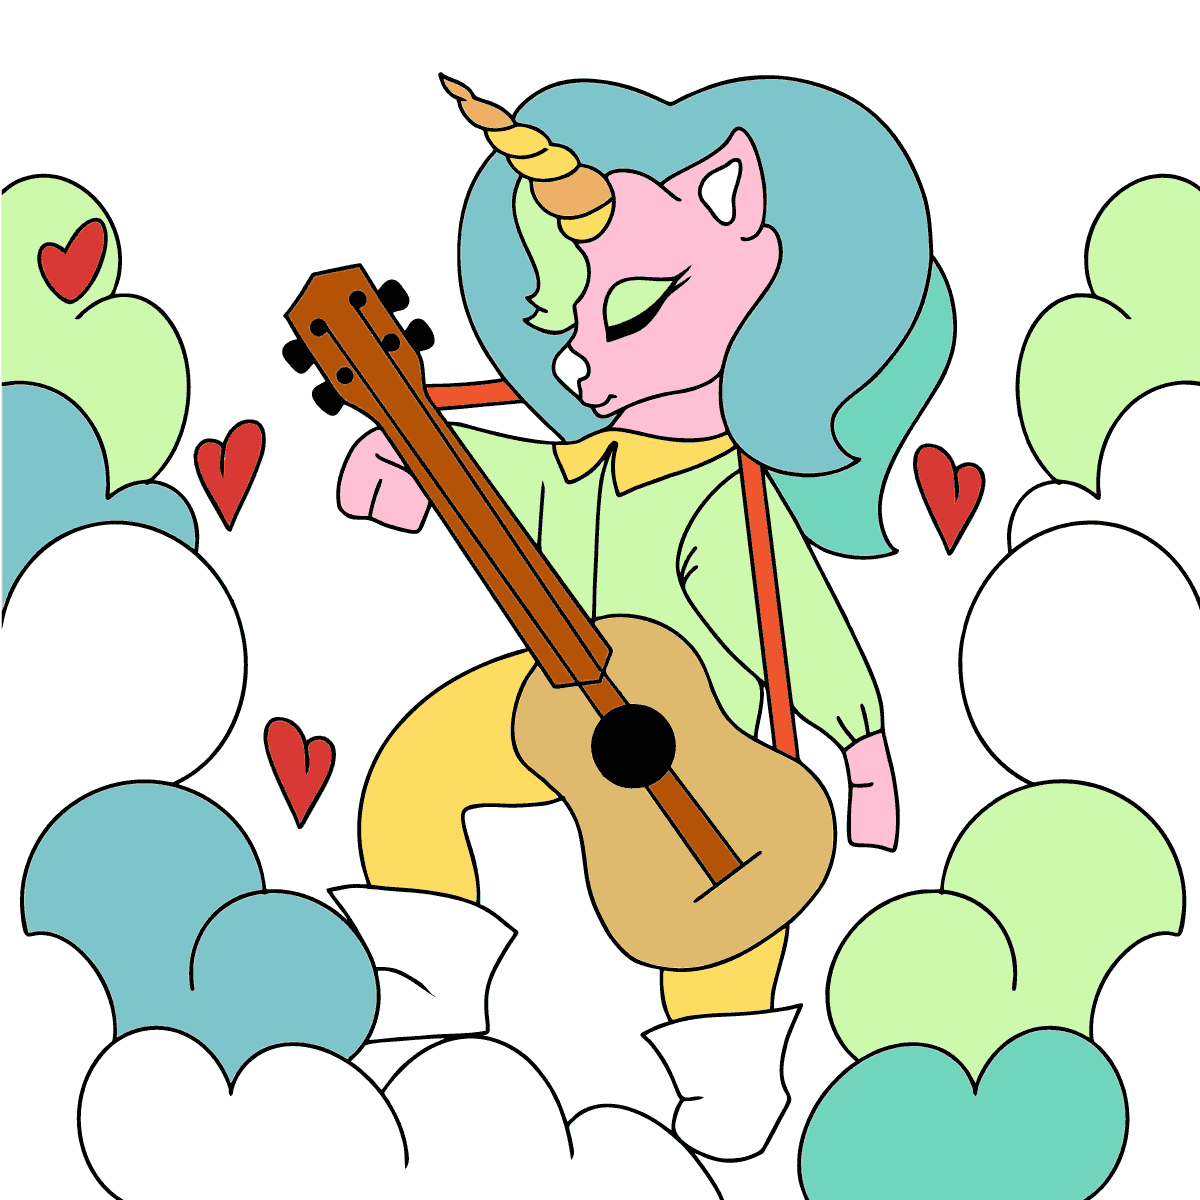 Coloring Page - A Unicorn with a Guitar